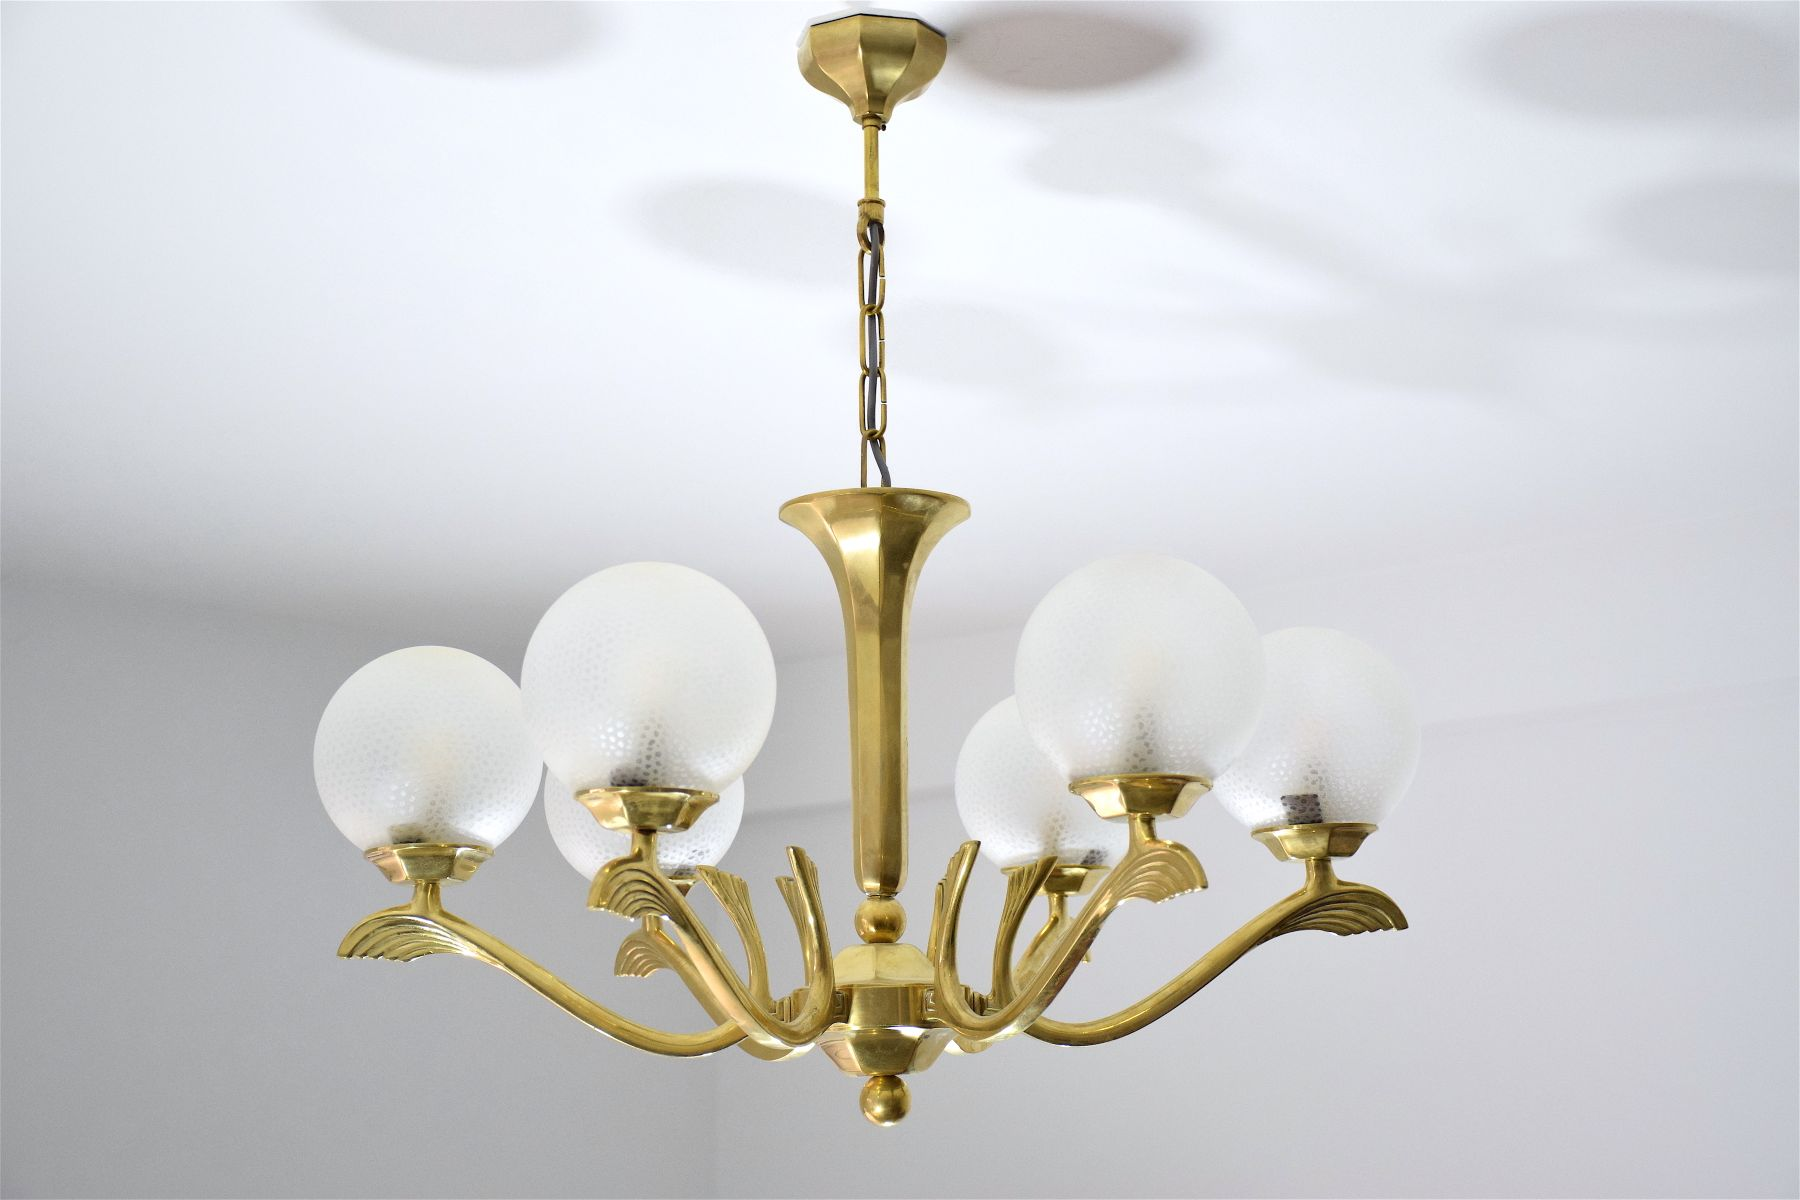 French art deco brass chandelier 1930s for sale at pamono french art deco brass chandelier 1930s aloadofball Gallery